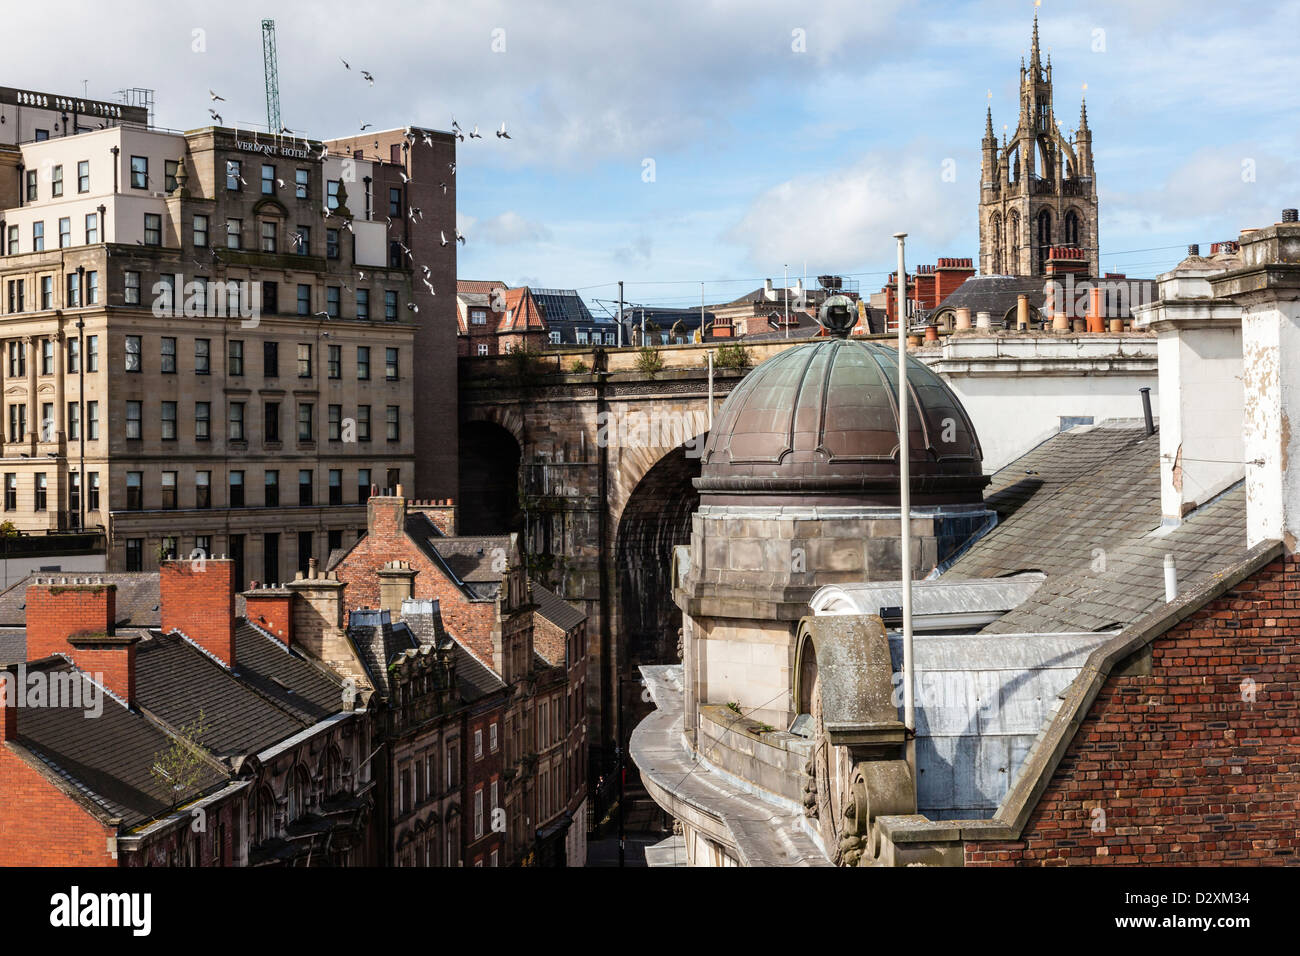 Views from the Tyne Bridge of the rooftops and Quayside and Side areas of Newcastle upon Tyne, Tyne and Wear, UK - Stock Image